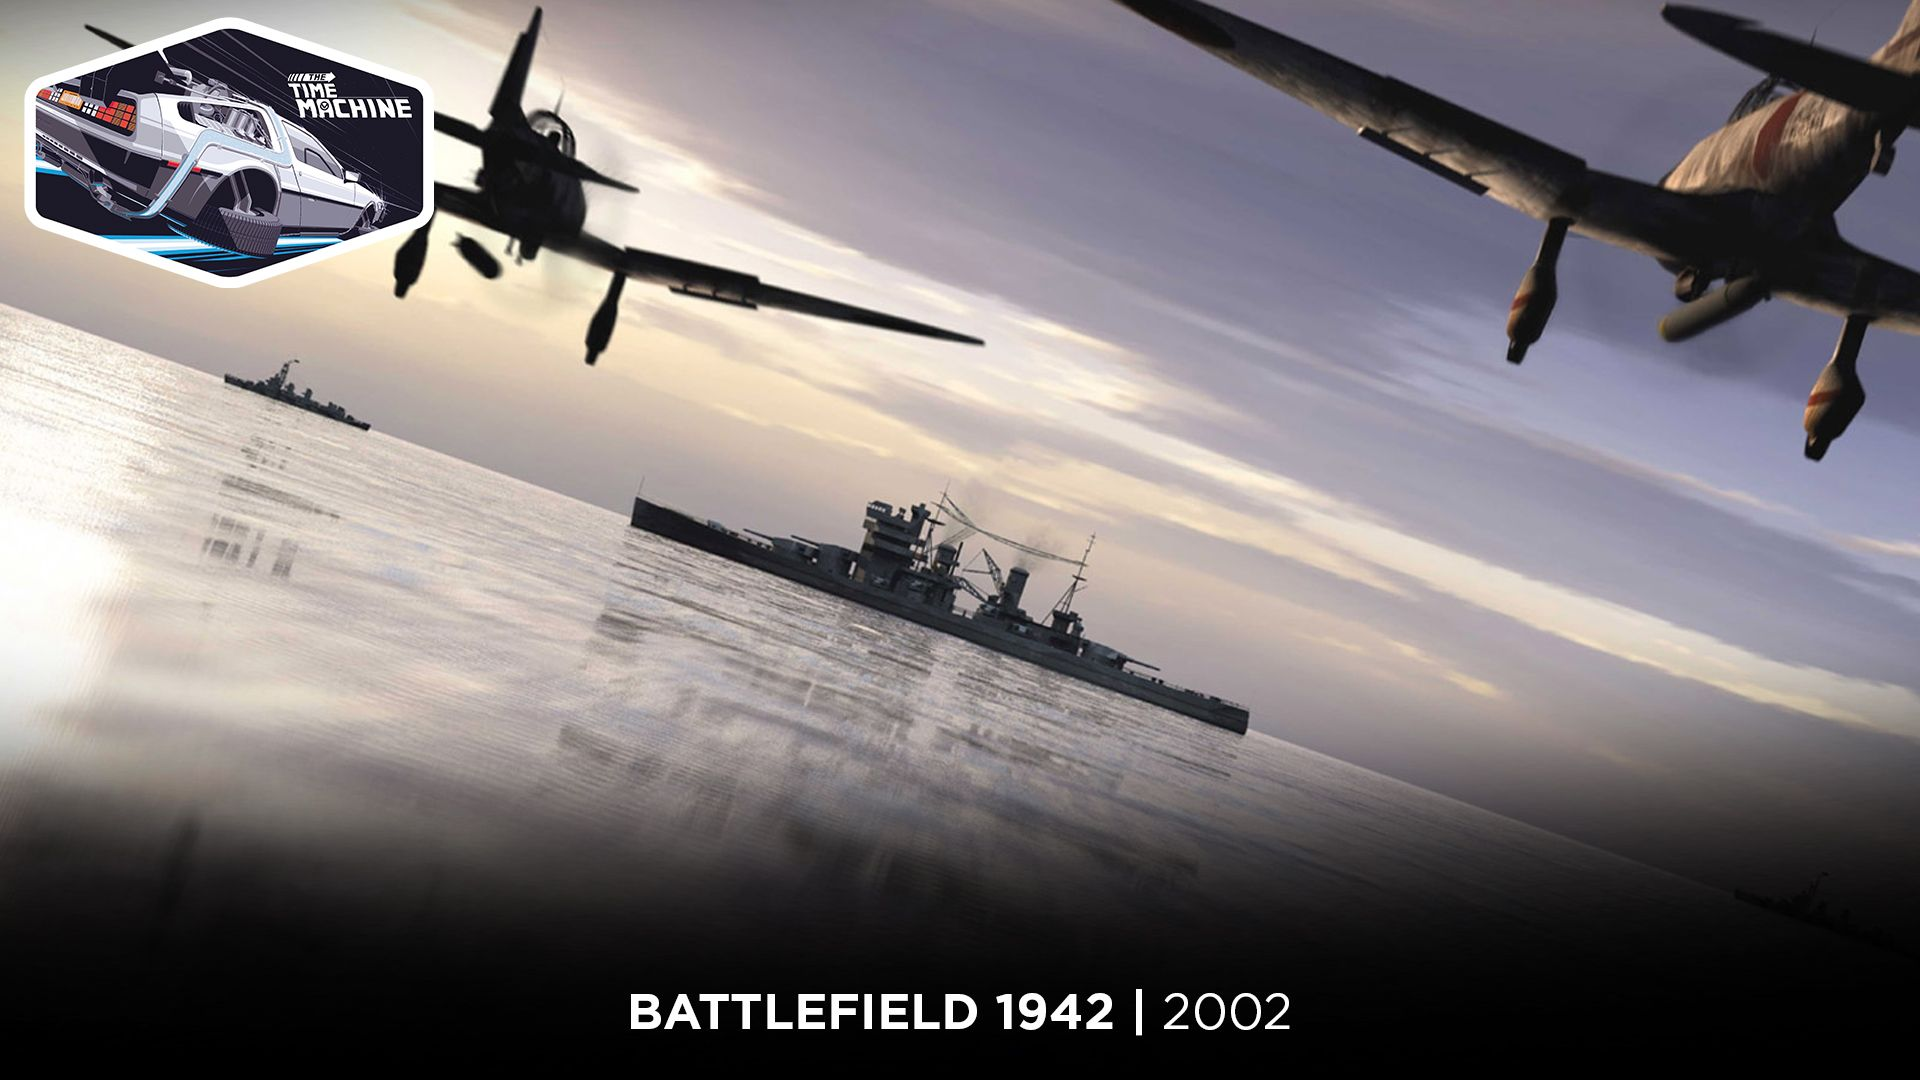 The Time Machine - Battlefield 1942